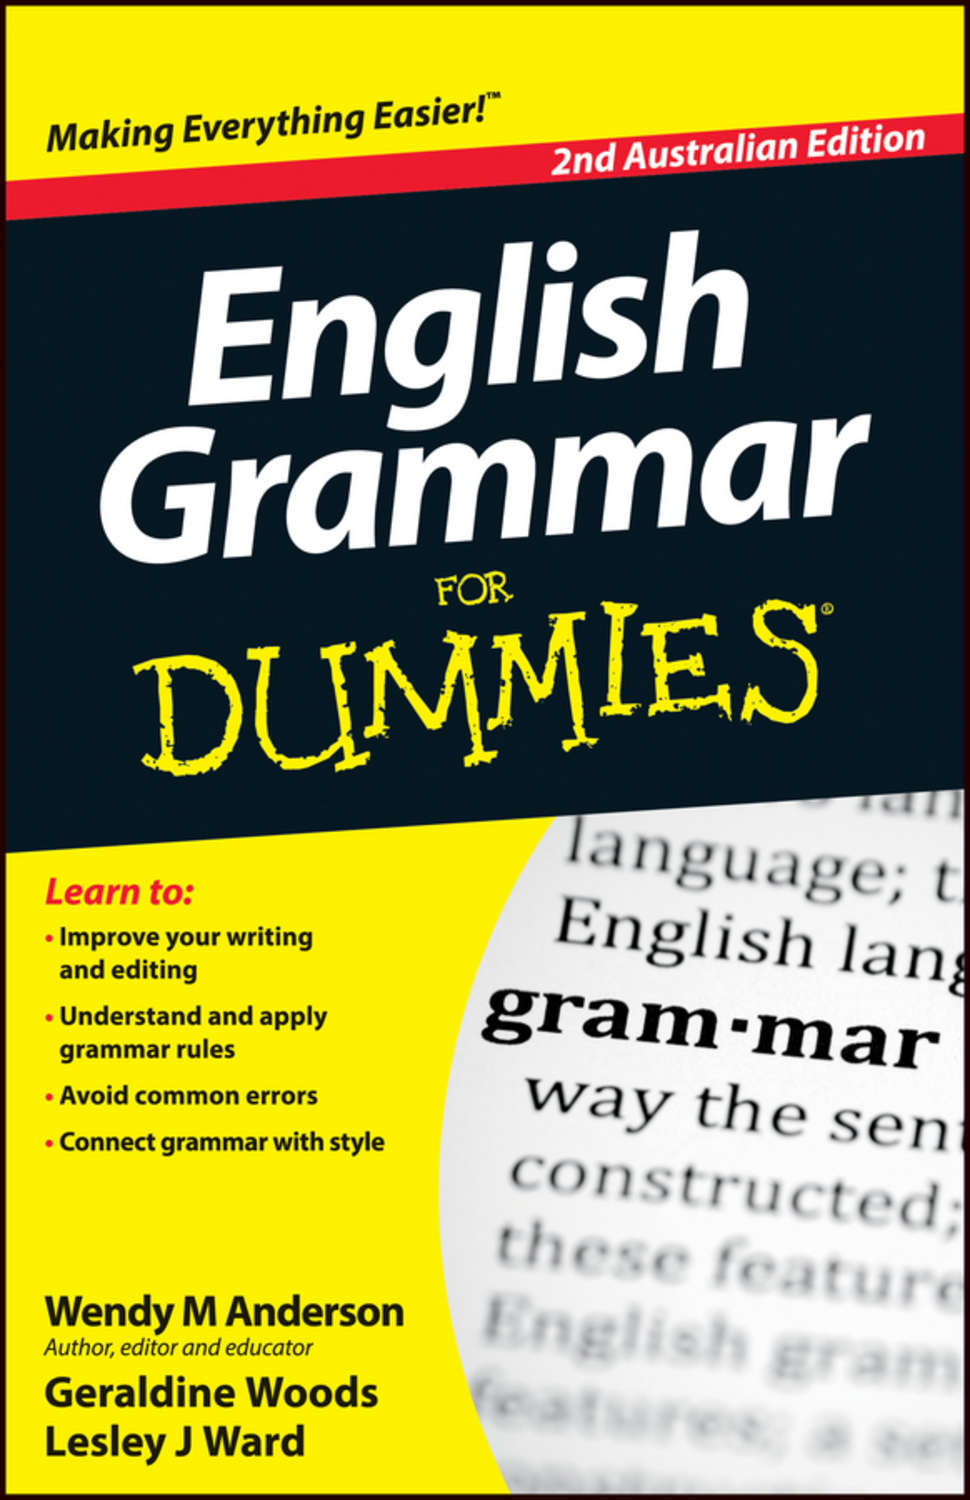 english language for dummies Find great deals on ebay for english language for dummies and english grammar for dummies shop with confidence.